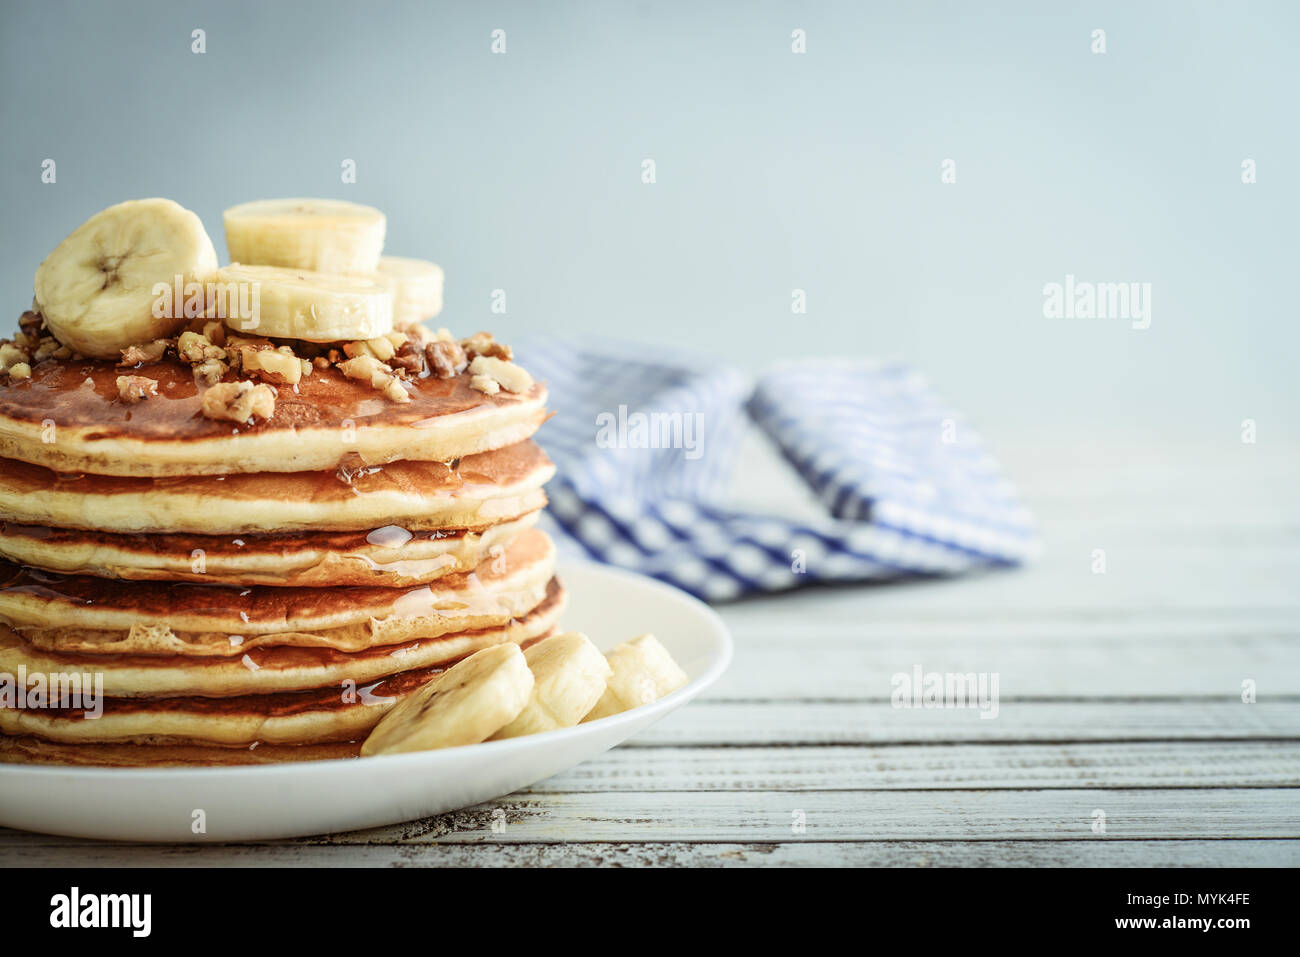 Pancakes with banana,walnut and muple syrup for a breakfast on wooden background closeup Stock Photo